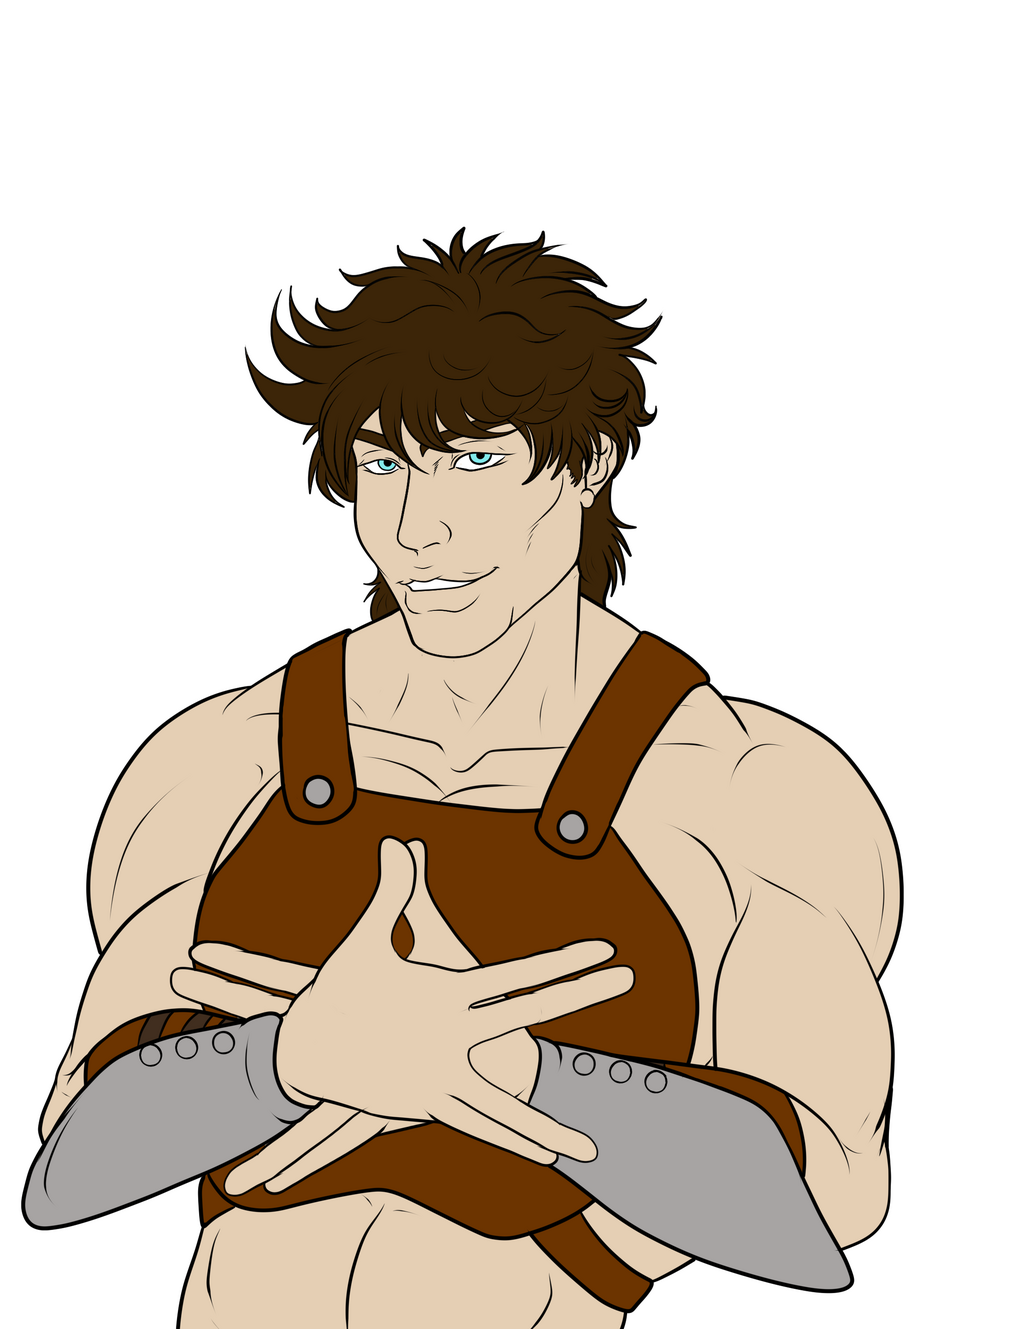 Most recent image: Josiah, the Friend;y Fiend's Deliveryboy.